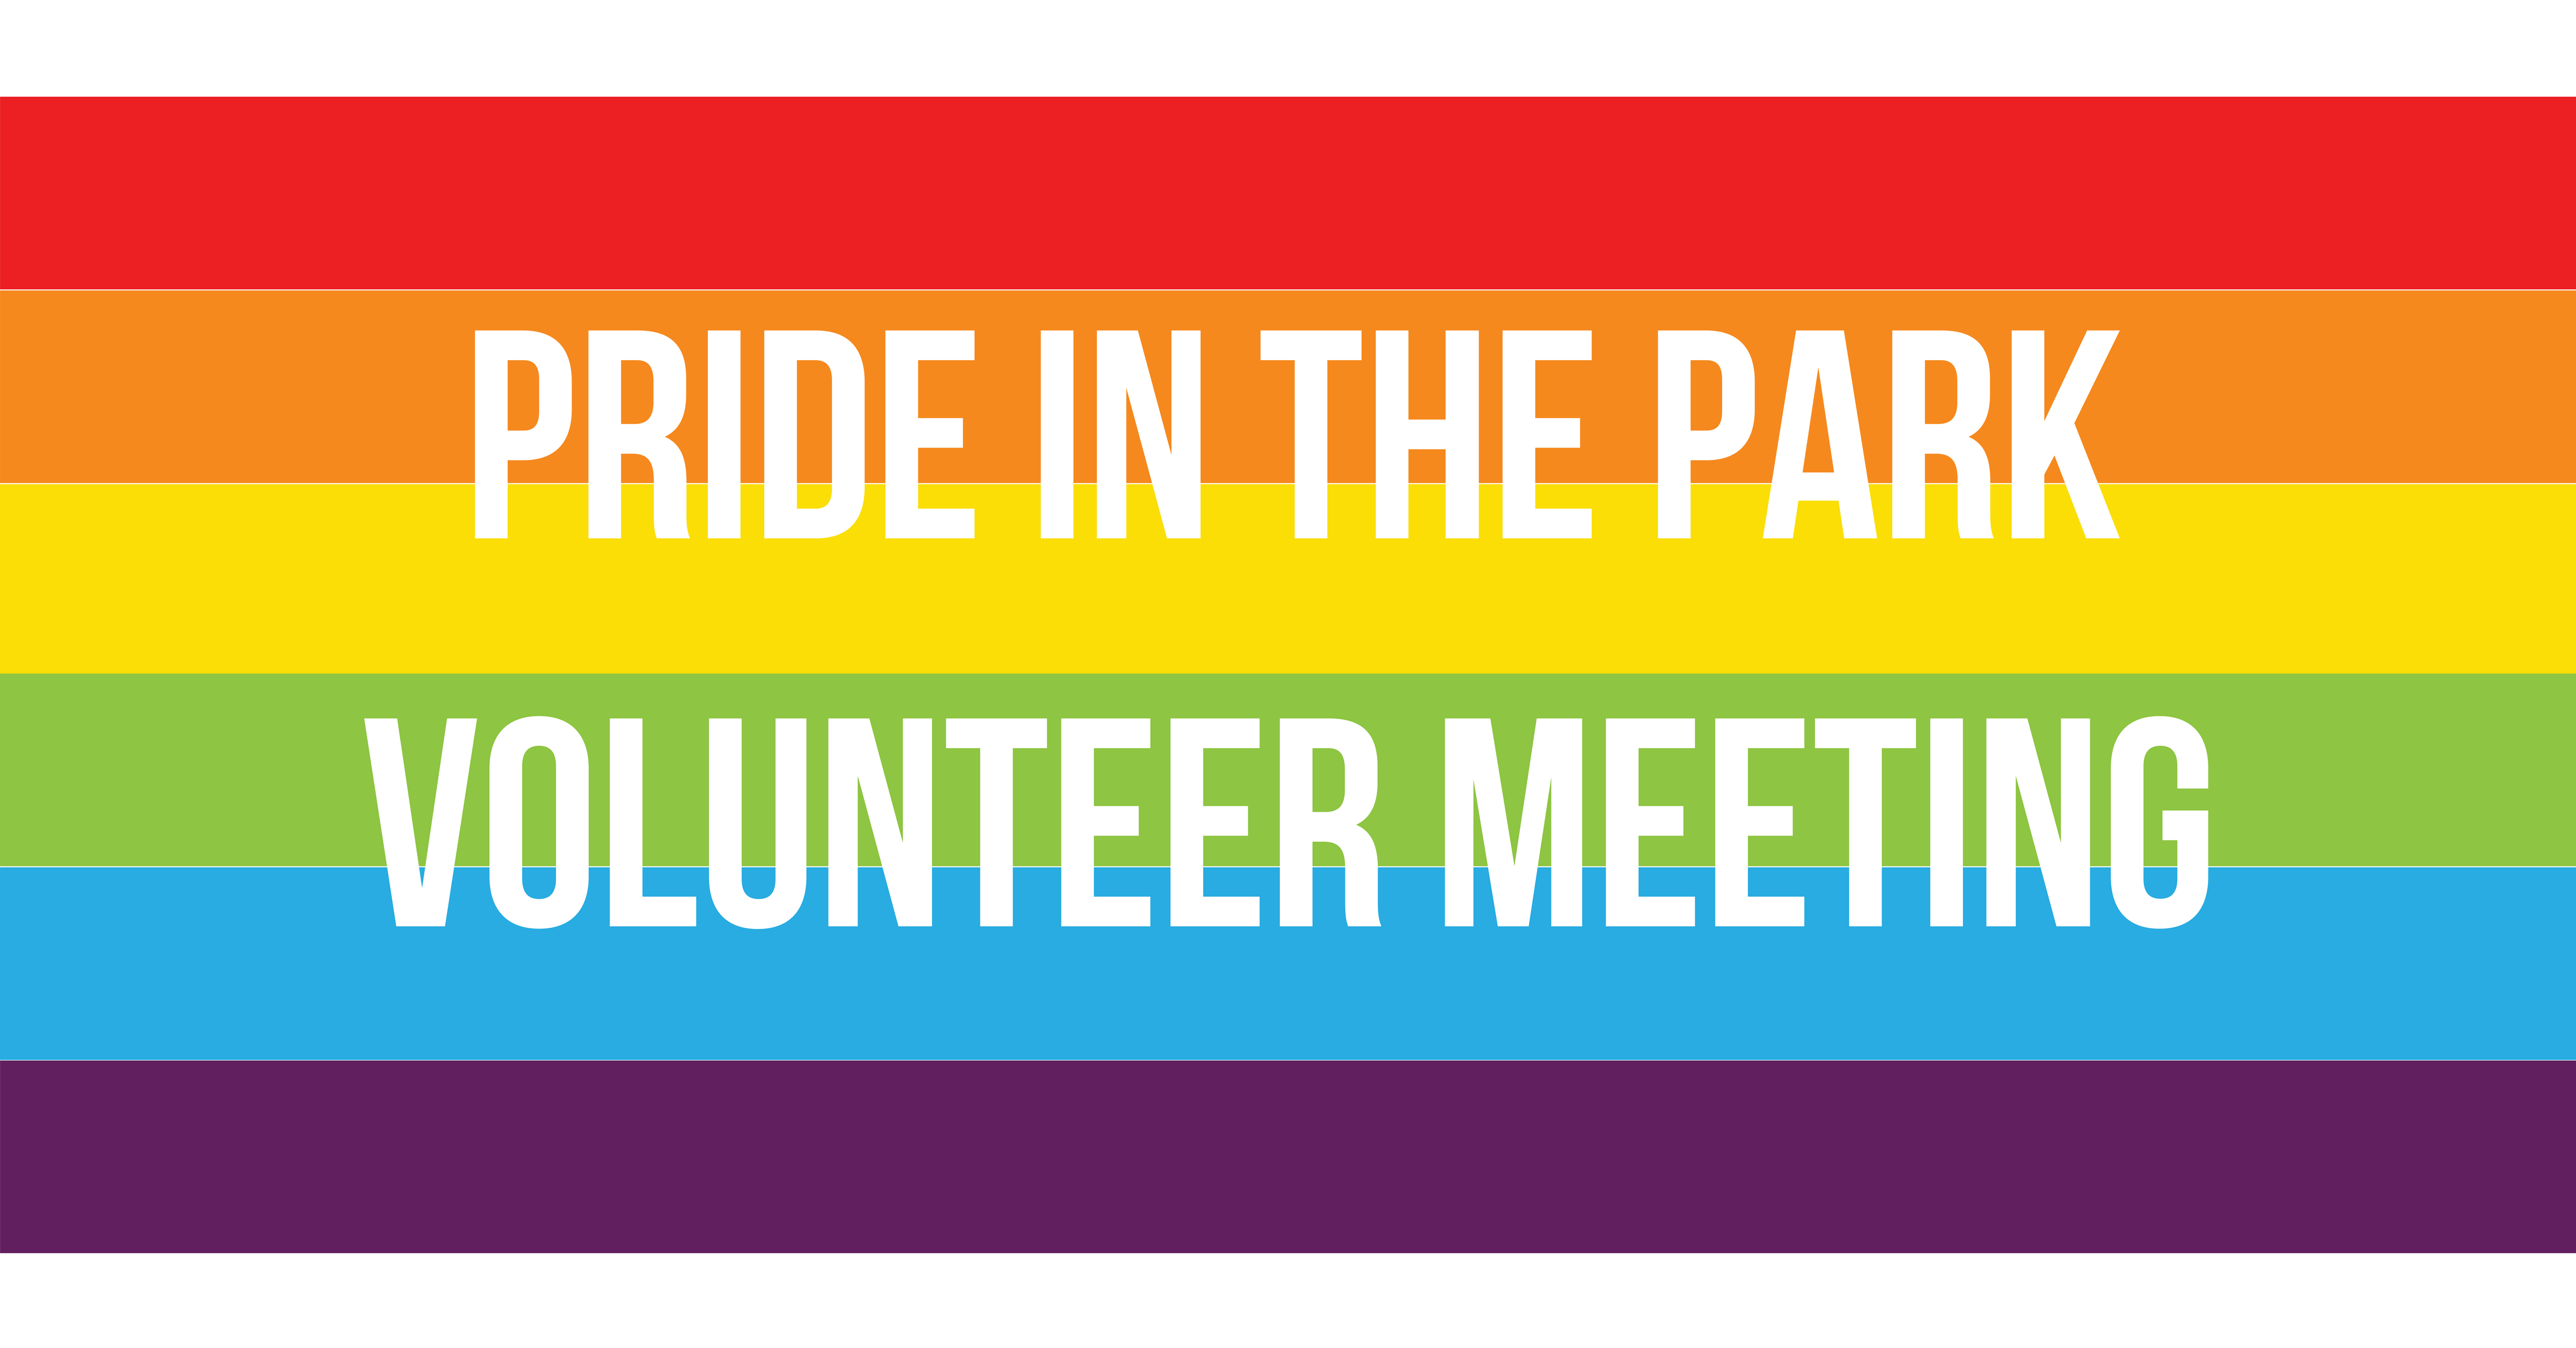 Pride in the Park Volunteer Meeting